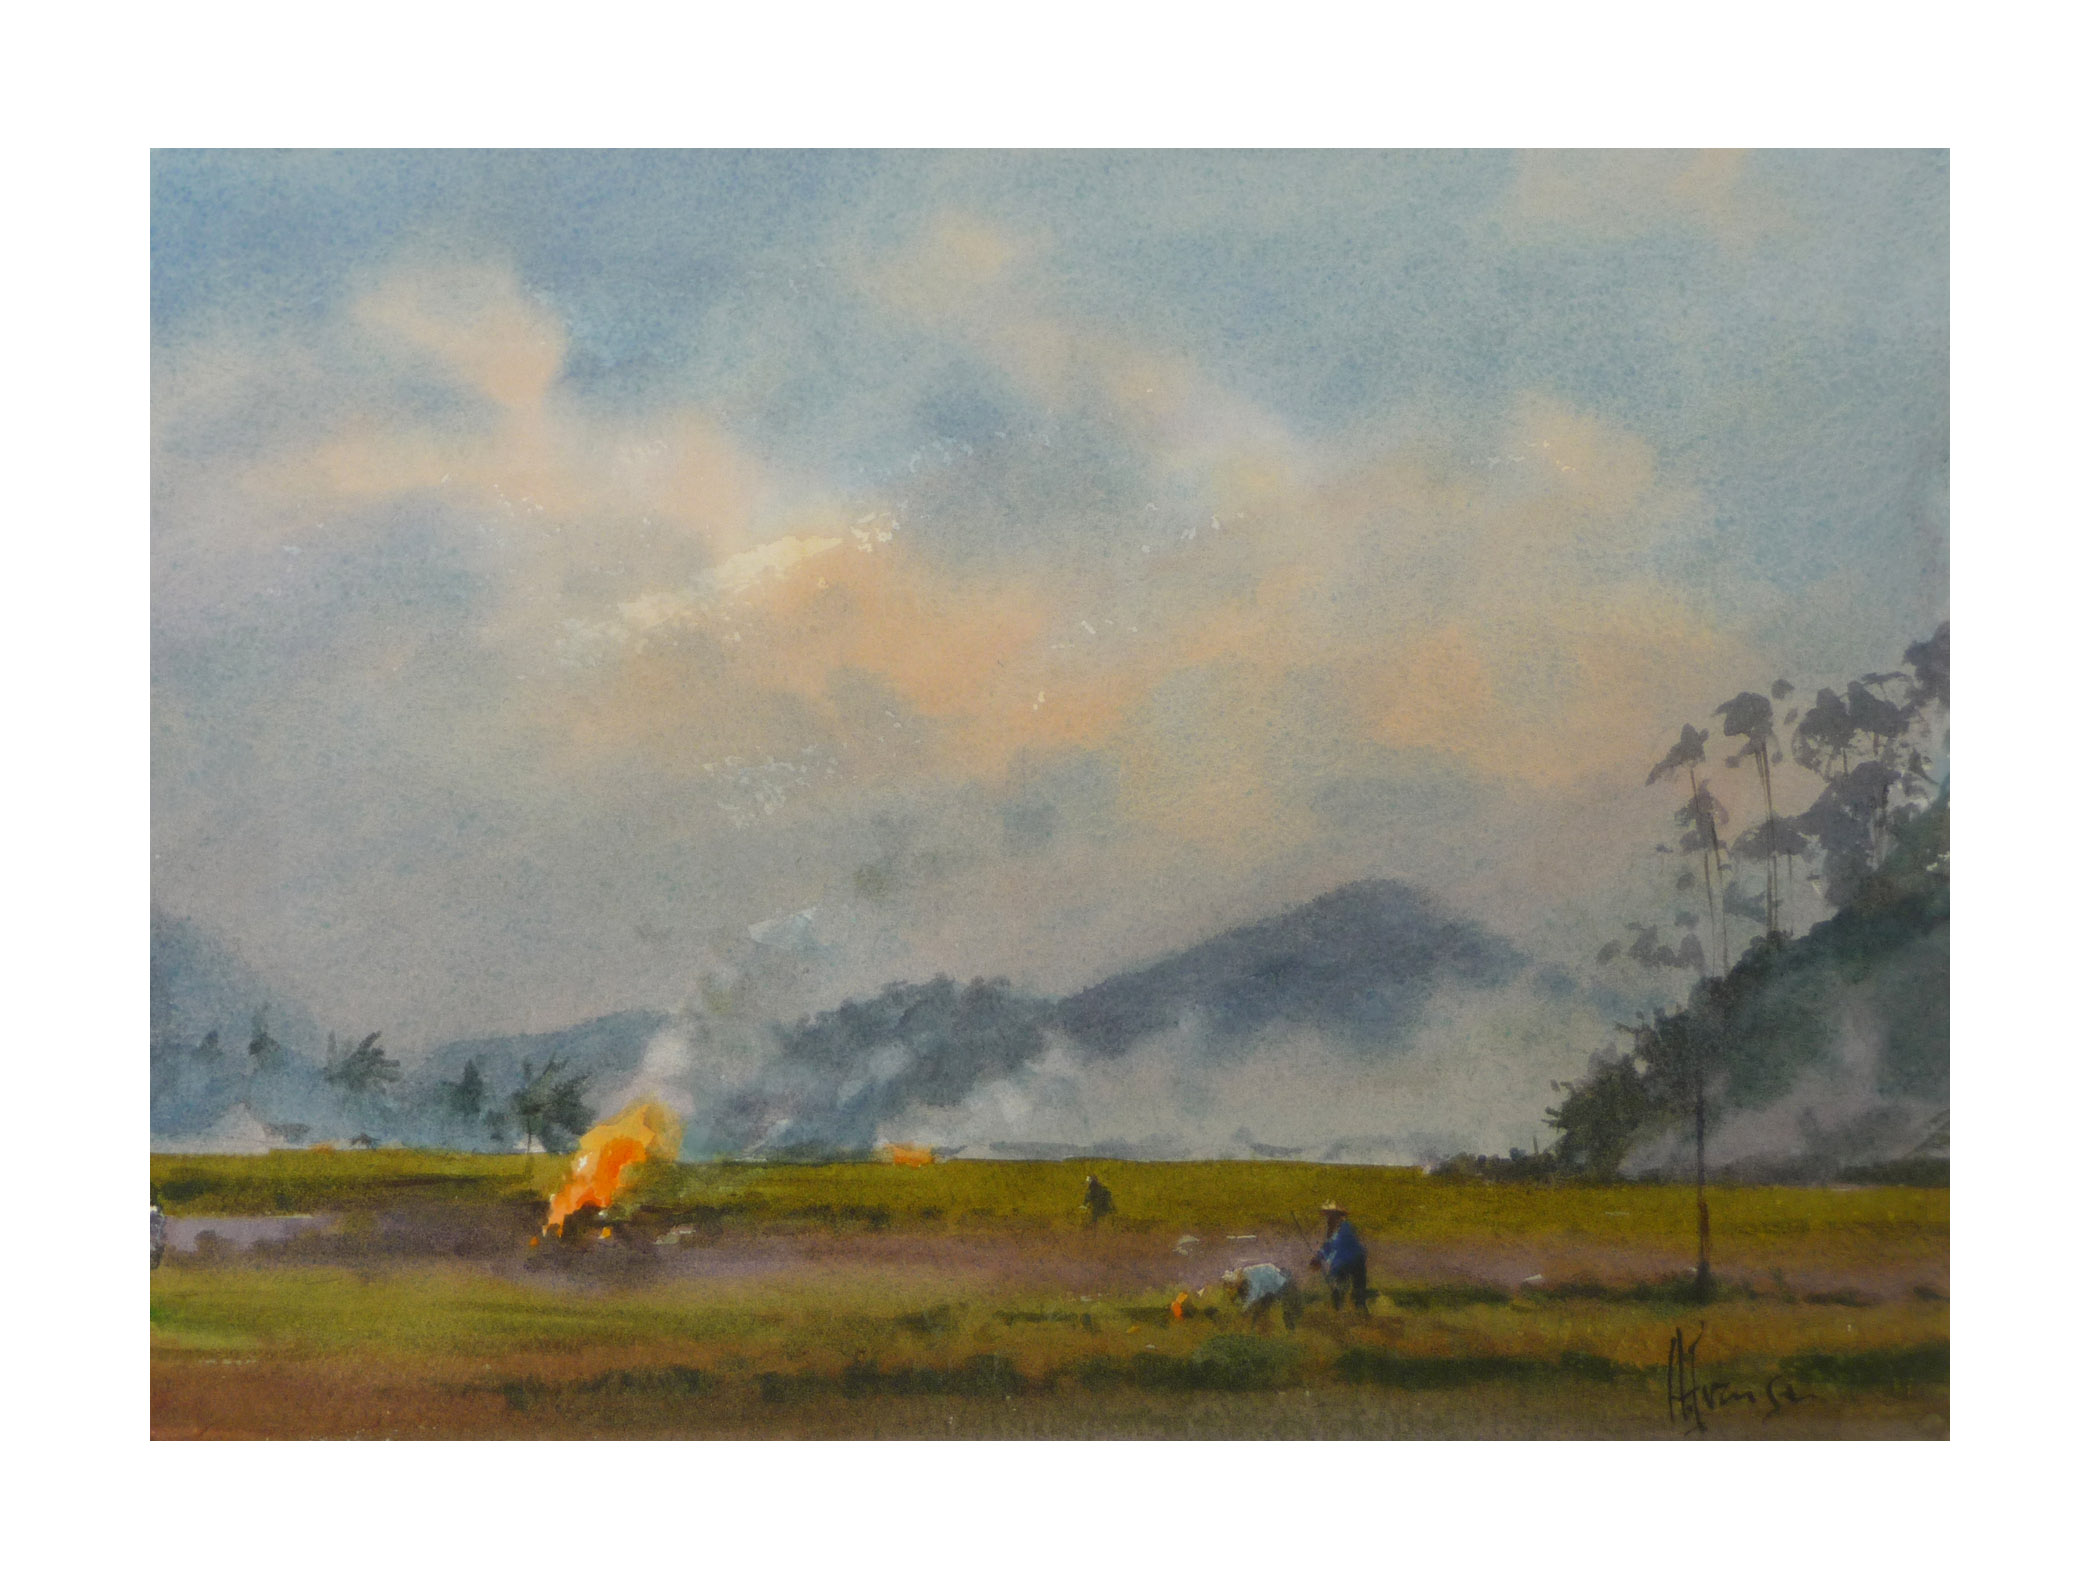 Andy Evansen - Burning the Fields, China